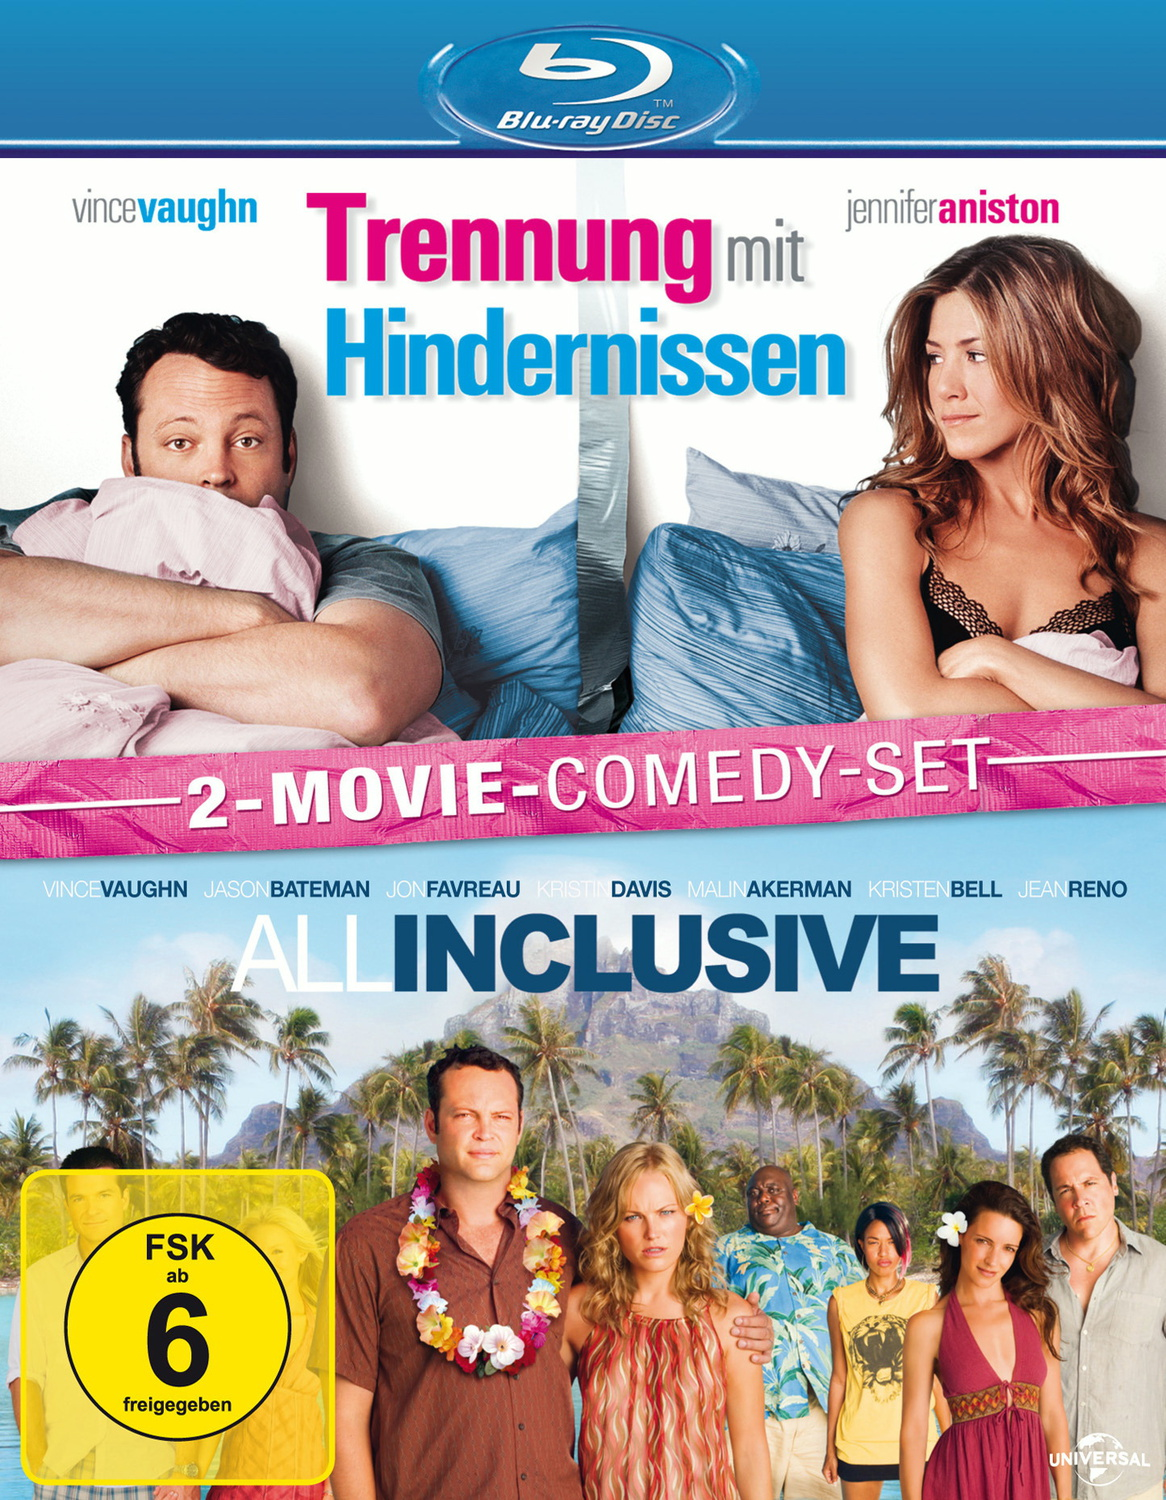 Trennung mit Hindernissen / All Inclusive [2 Mo...